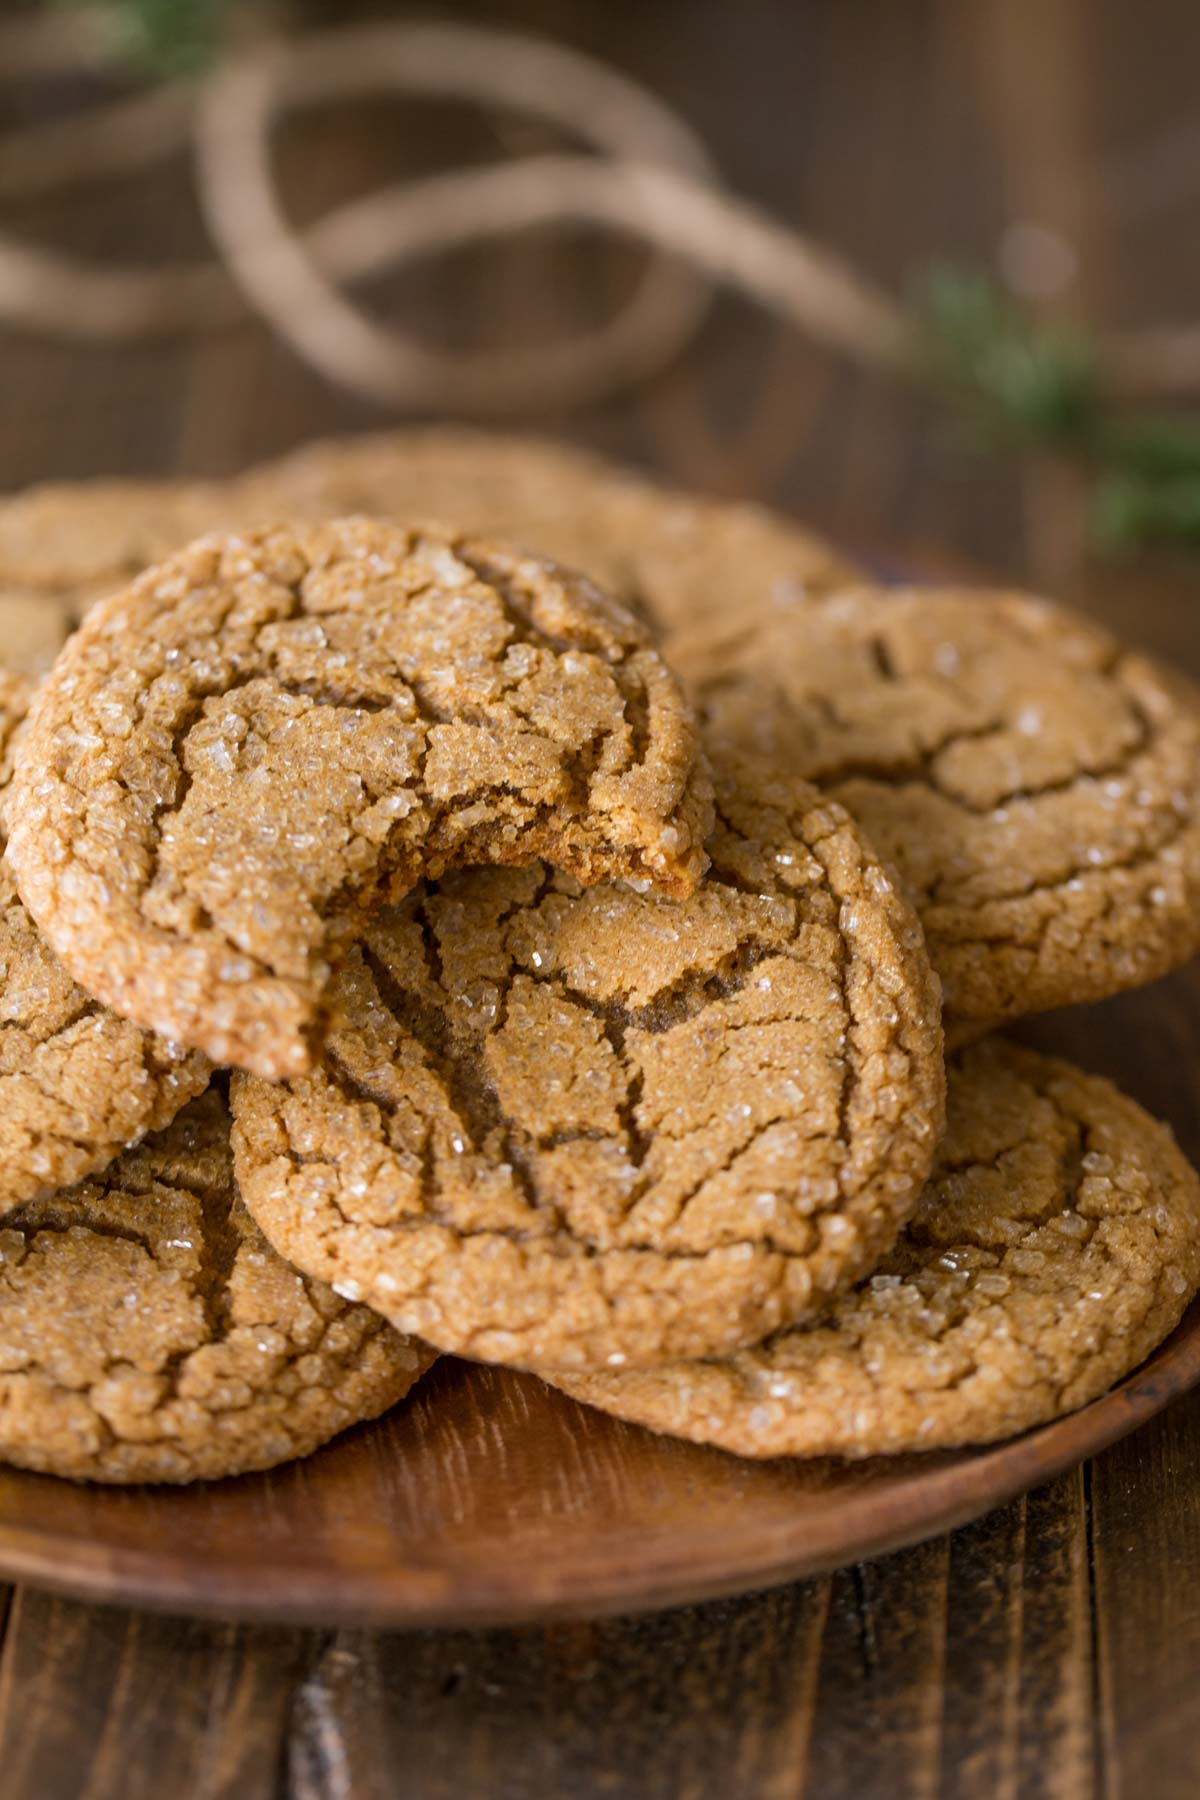 A wood plate full of Old Fashioned Ginger Snaps, with a bite taken out of the one on top.